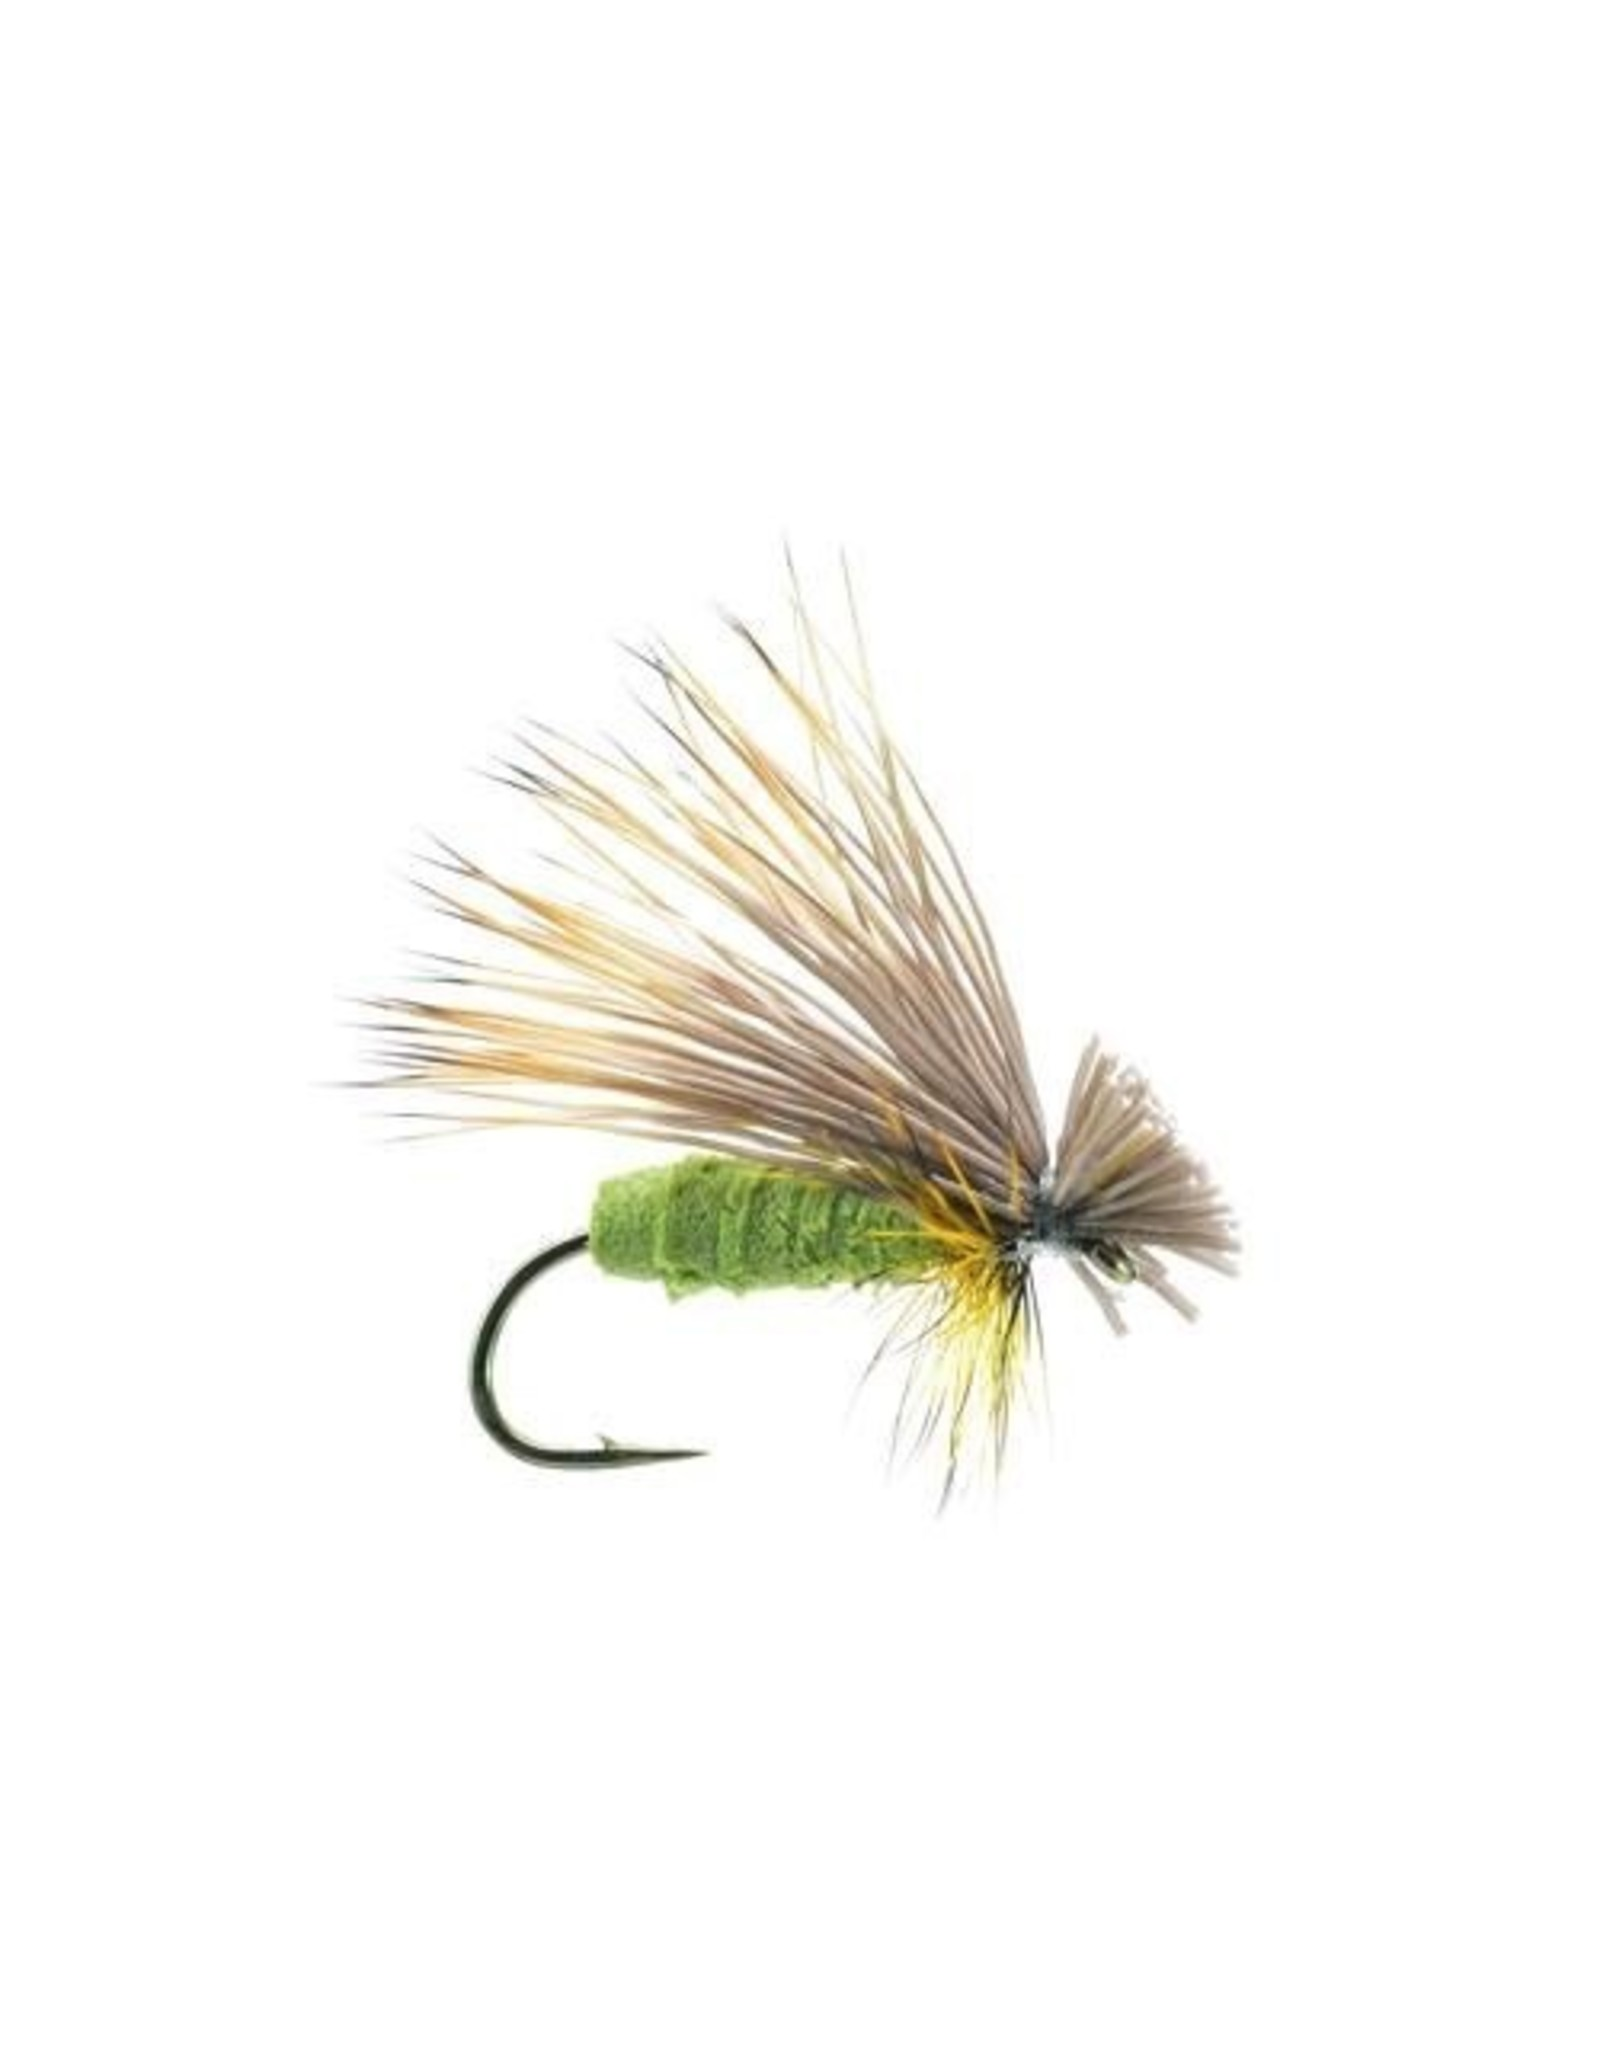 Umpqua Better Foam Caddis (3 Pack)